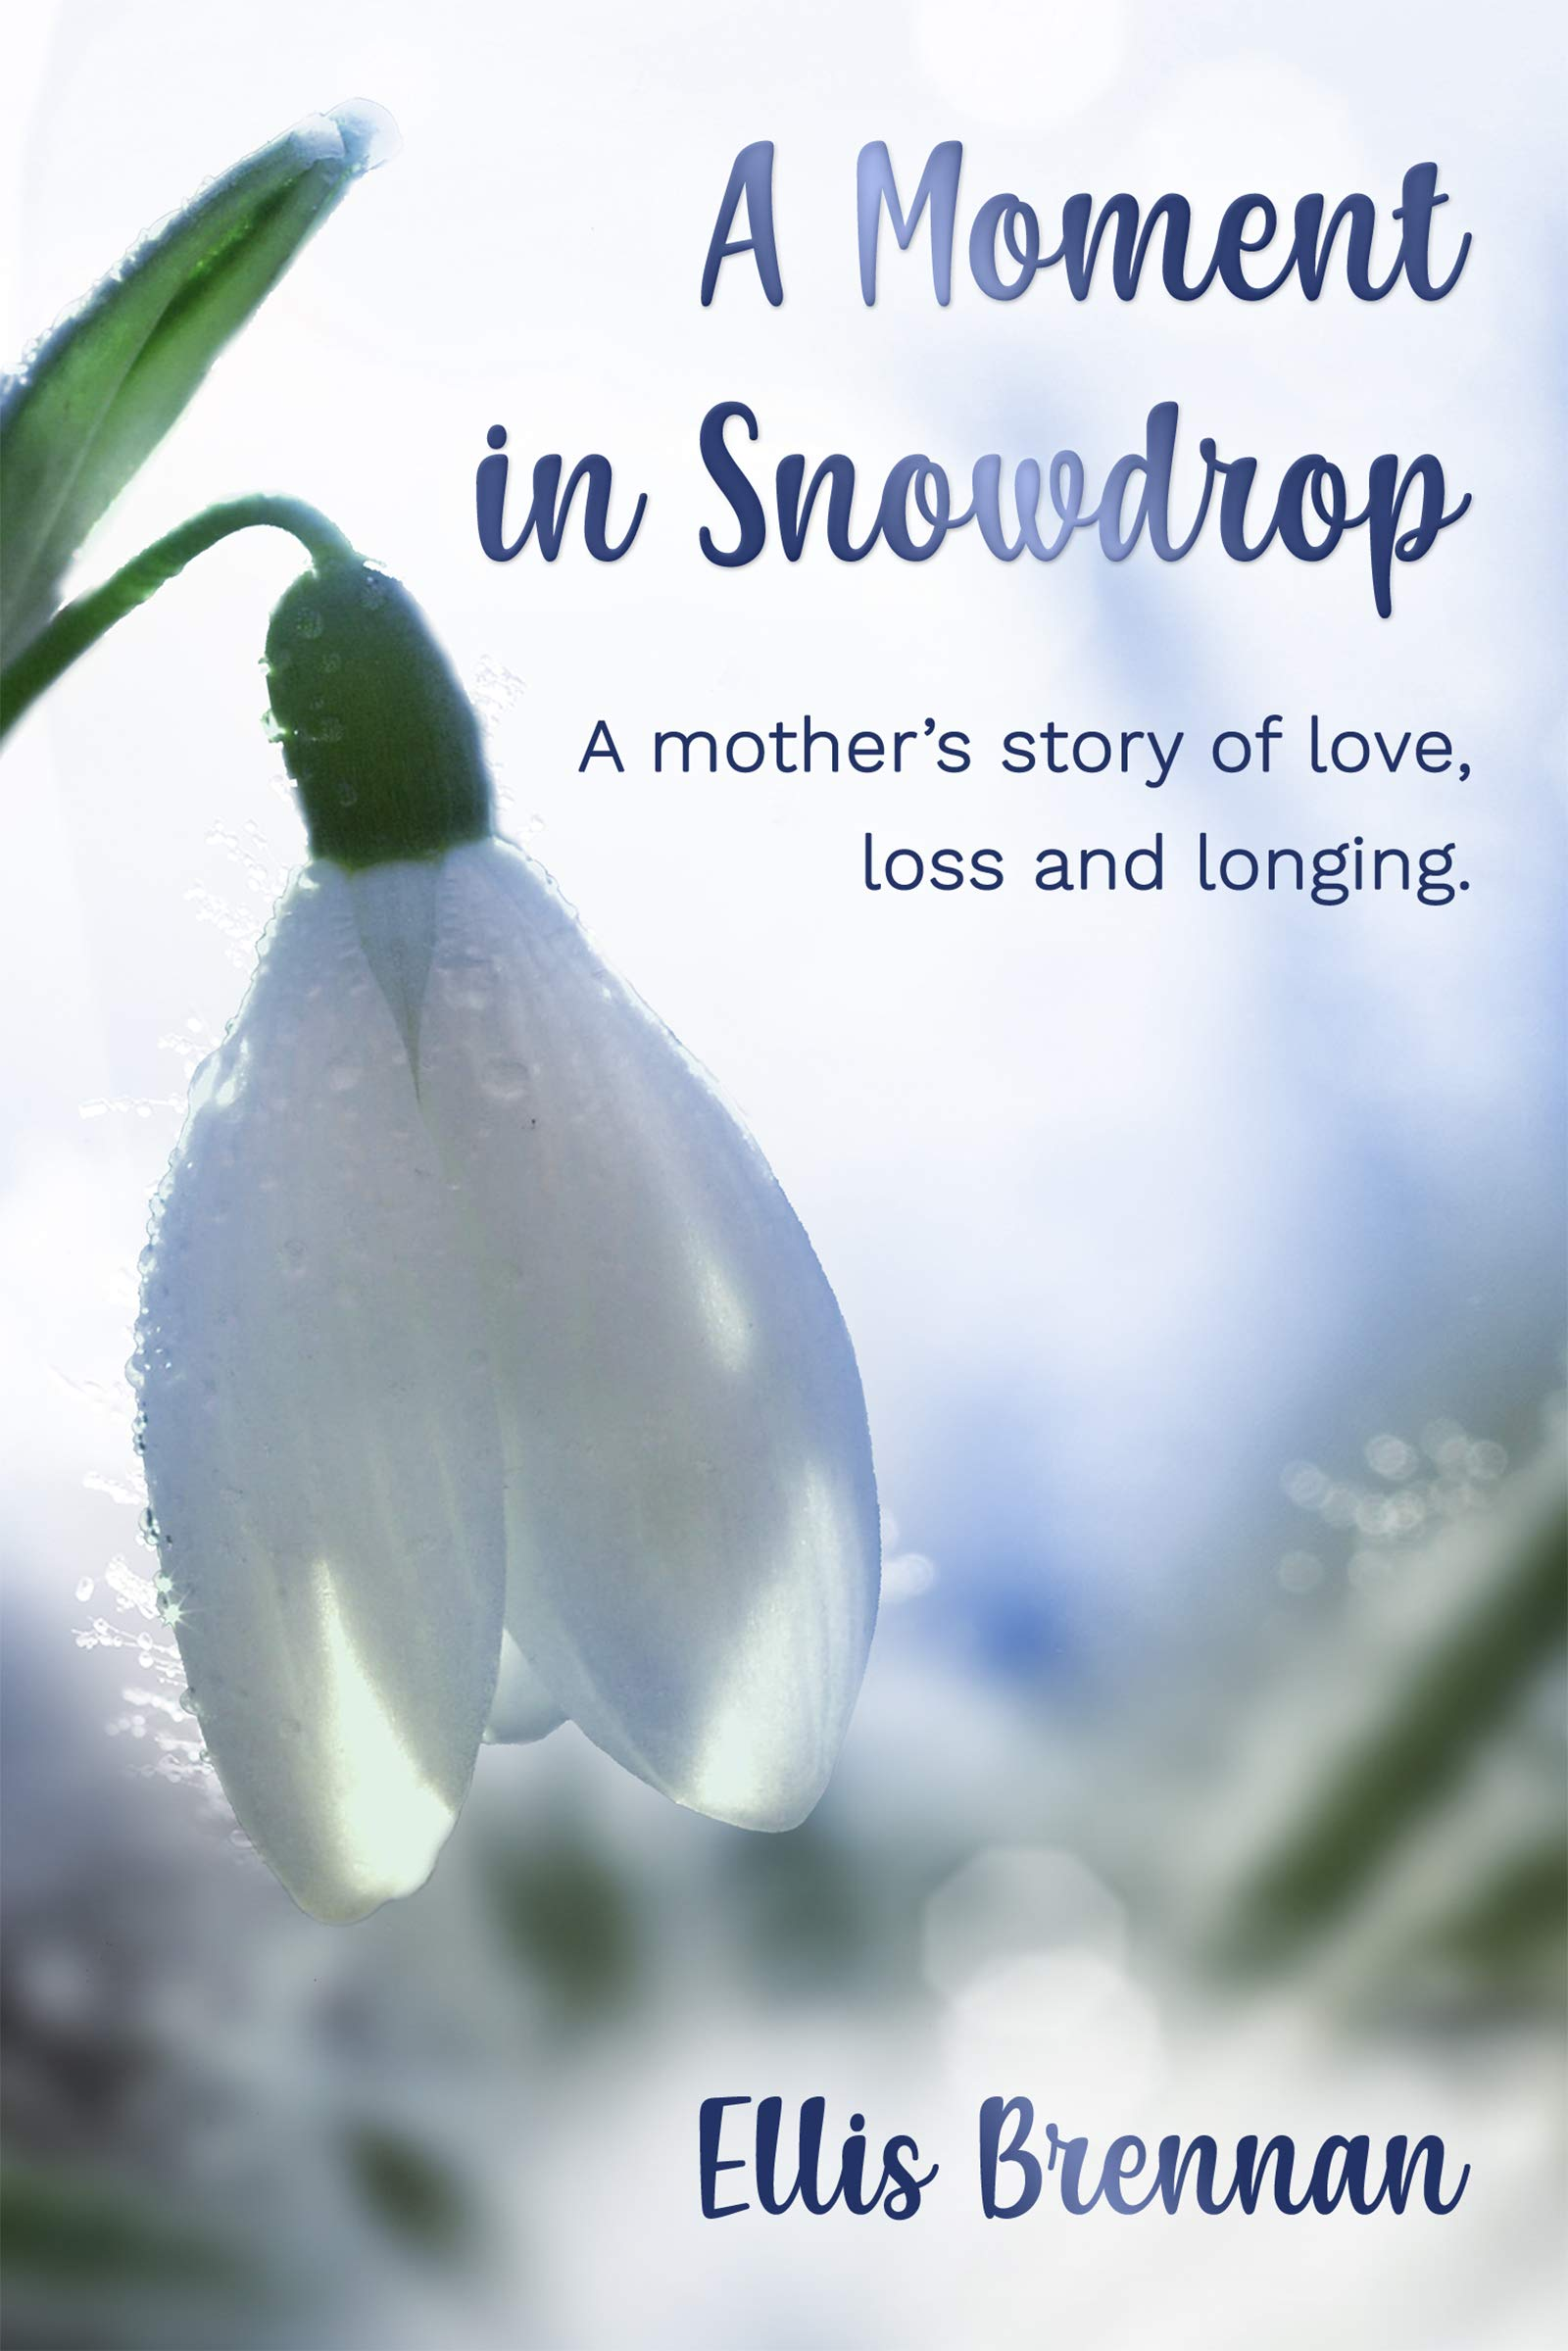 A Moment in Snowdrop: a mother's story of love, loss and longing